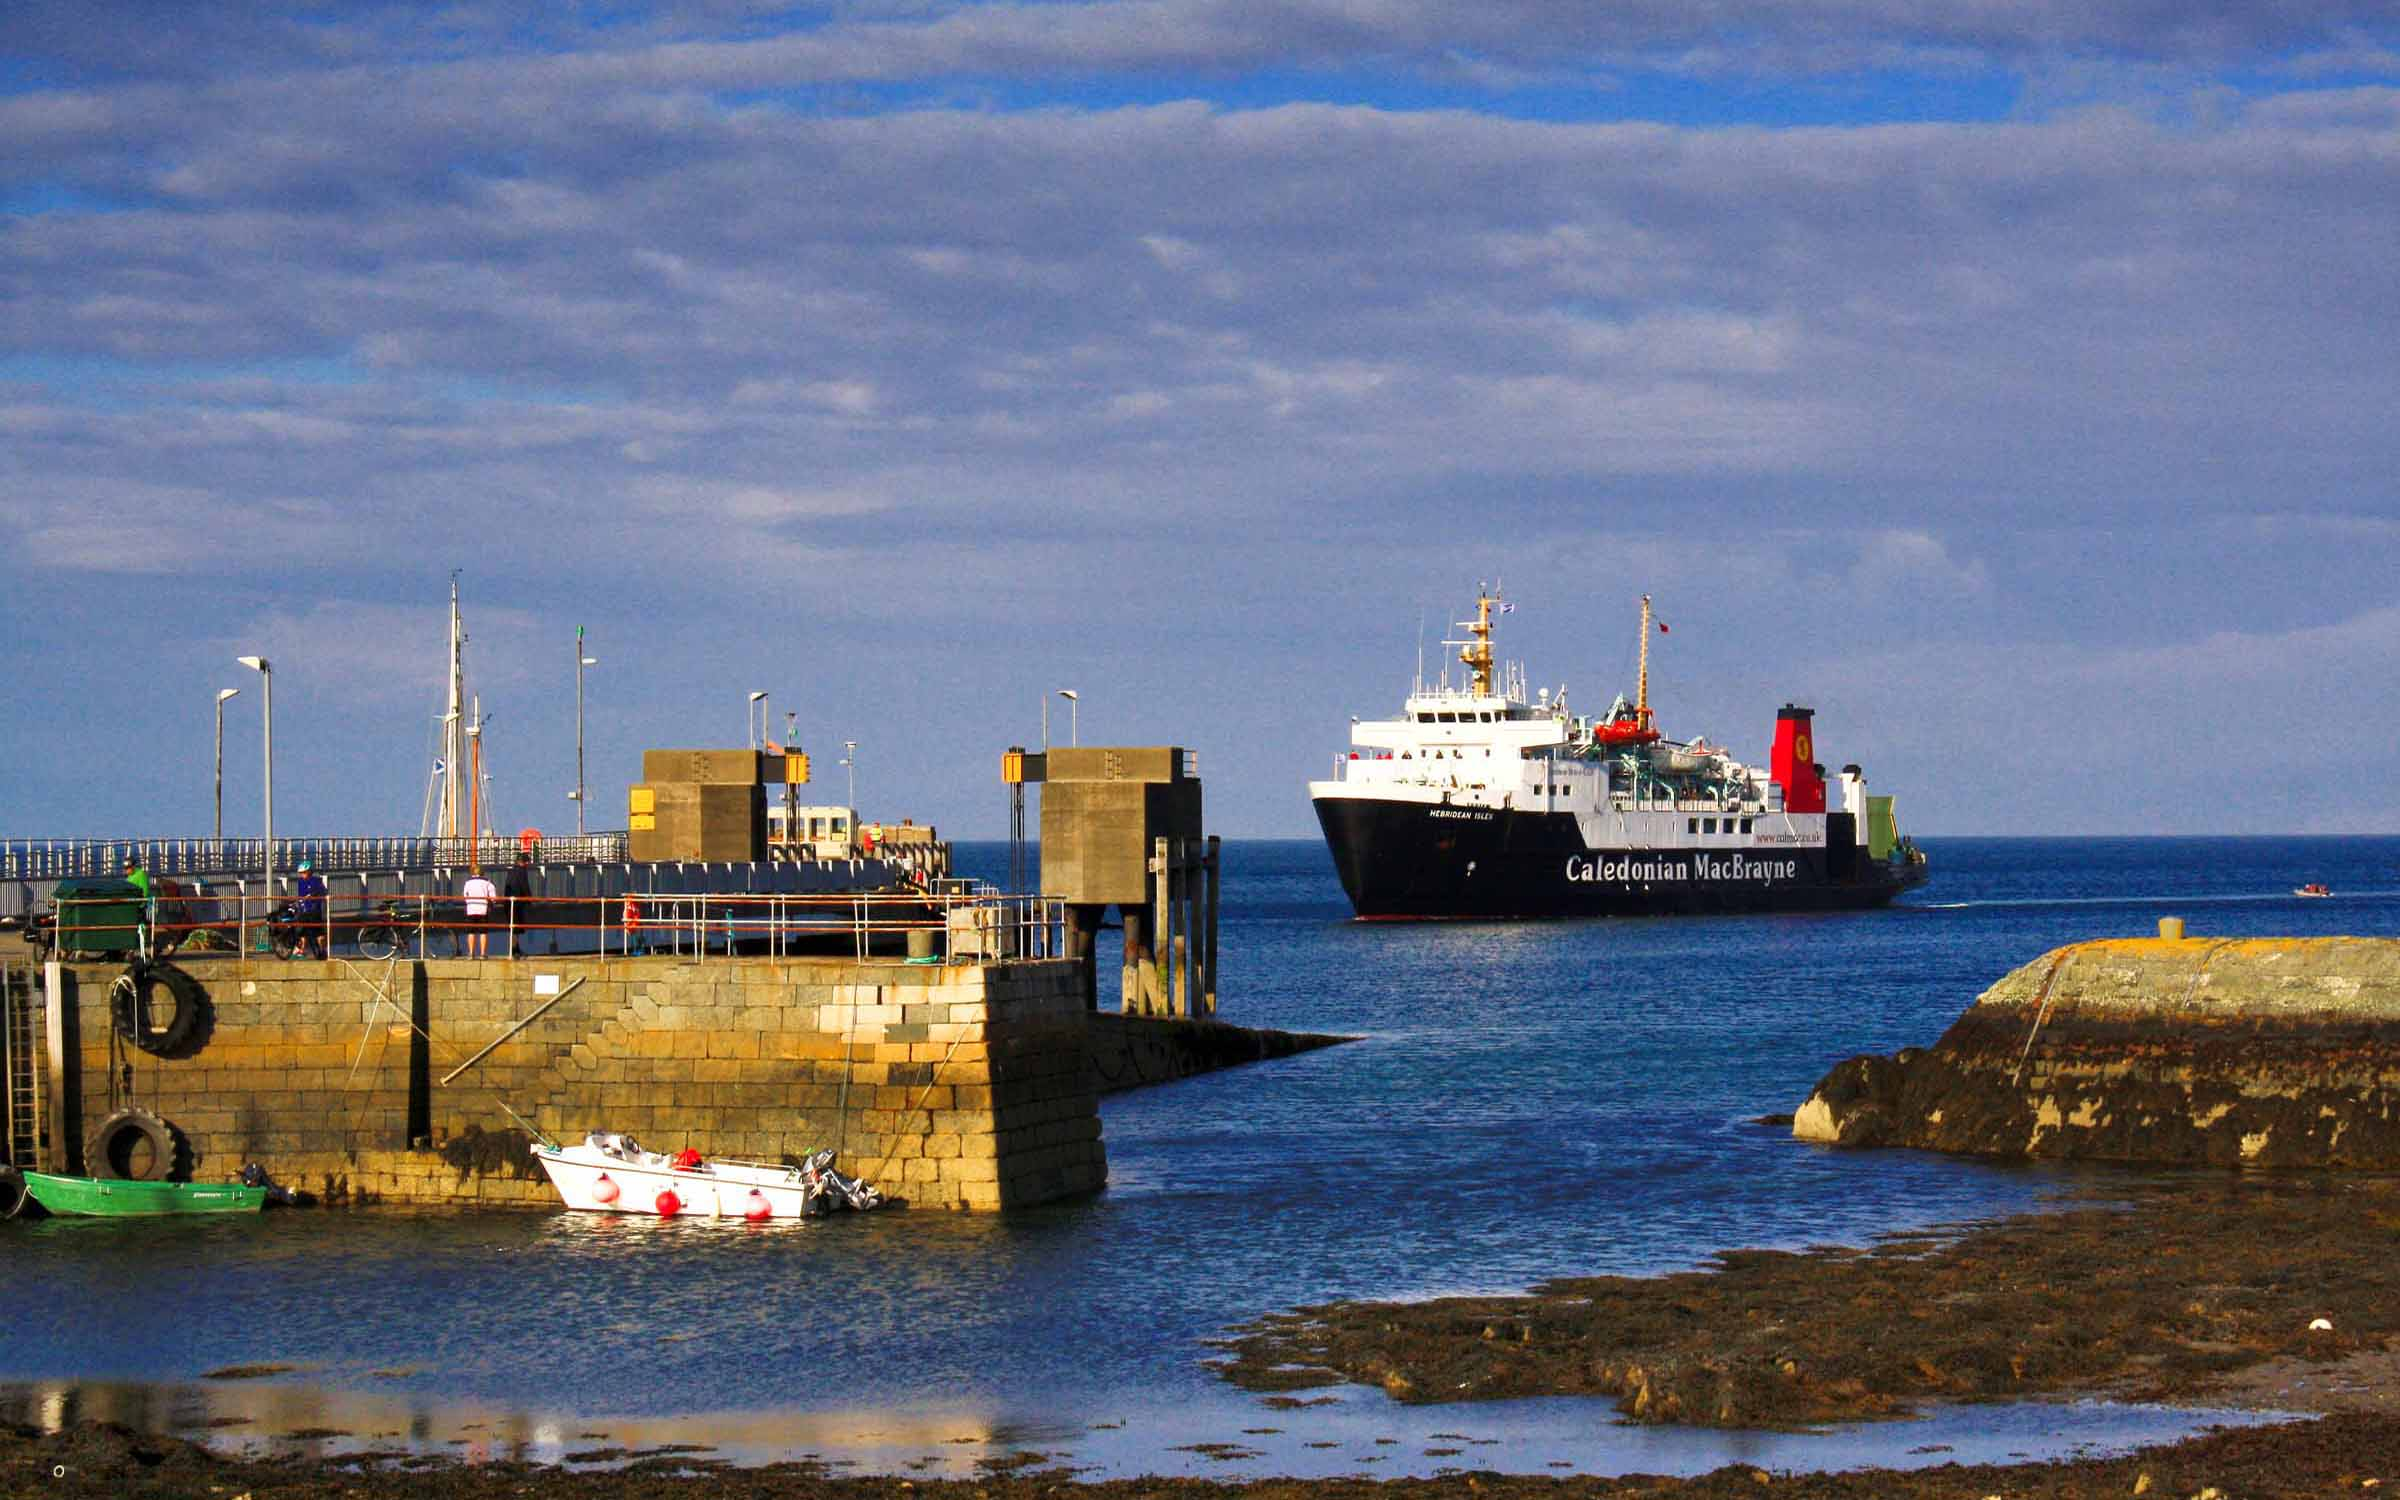 Hebridean Isles arriving at Colonsay (Ships of CalMac)